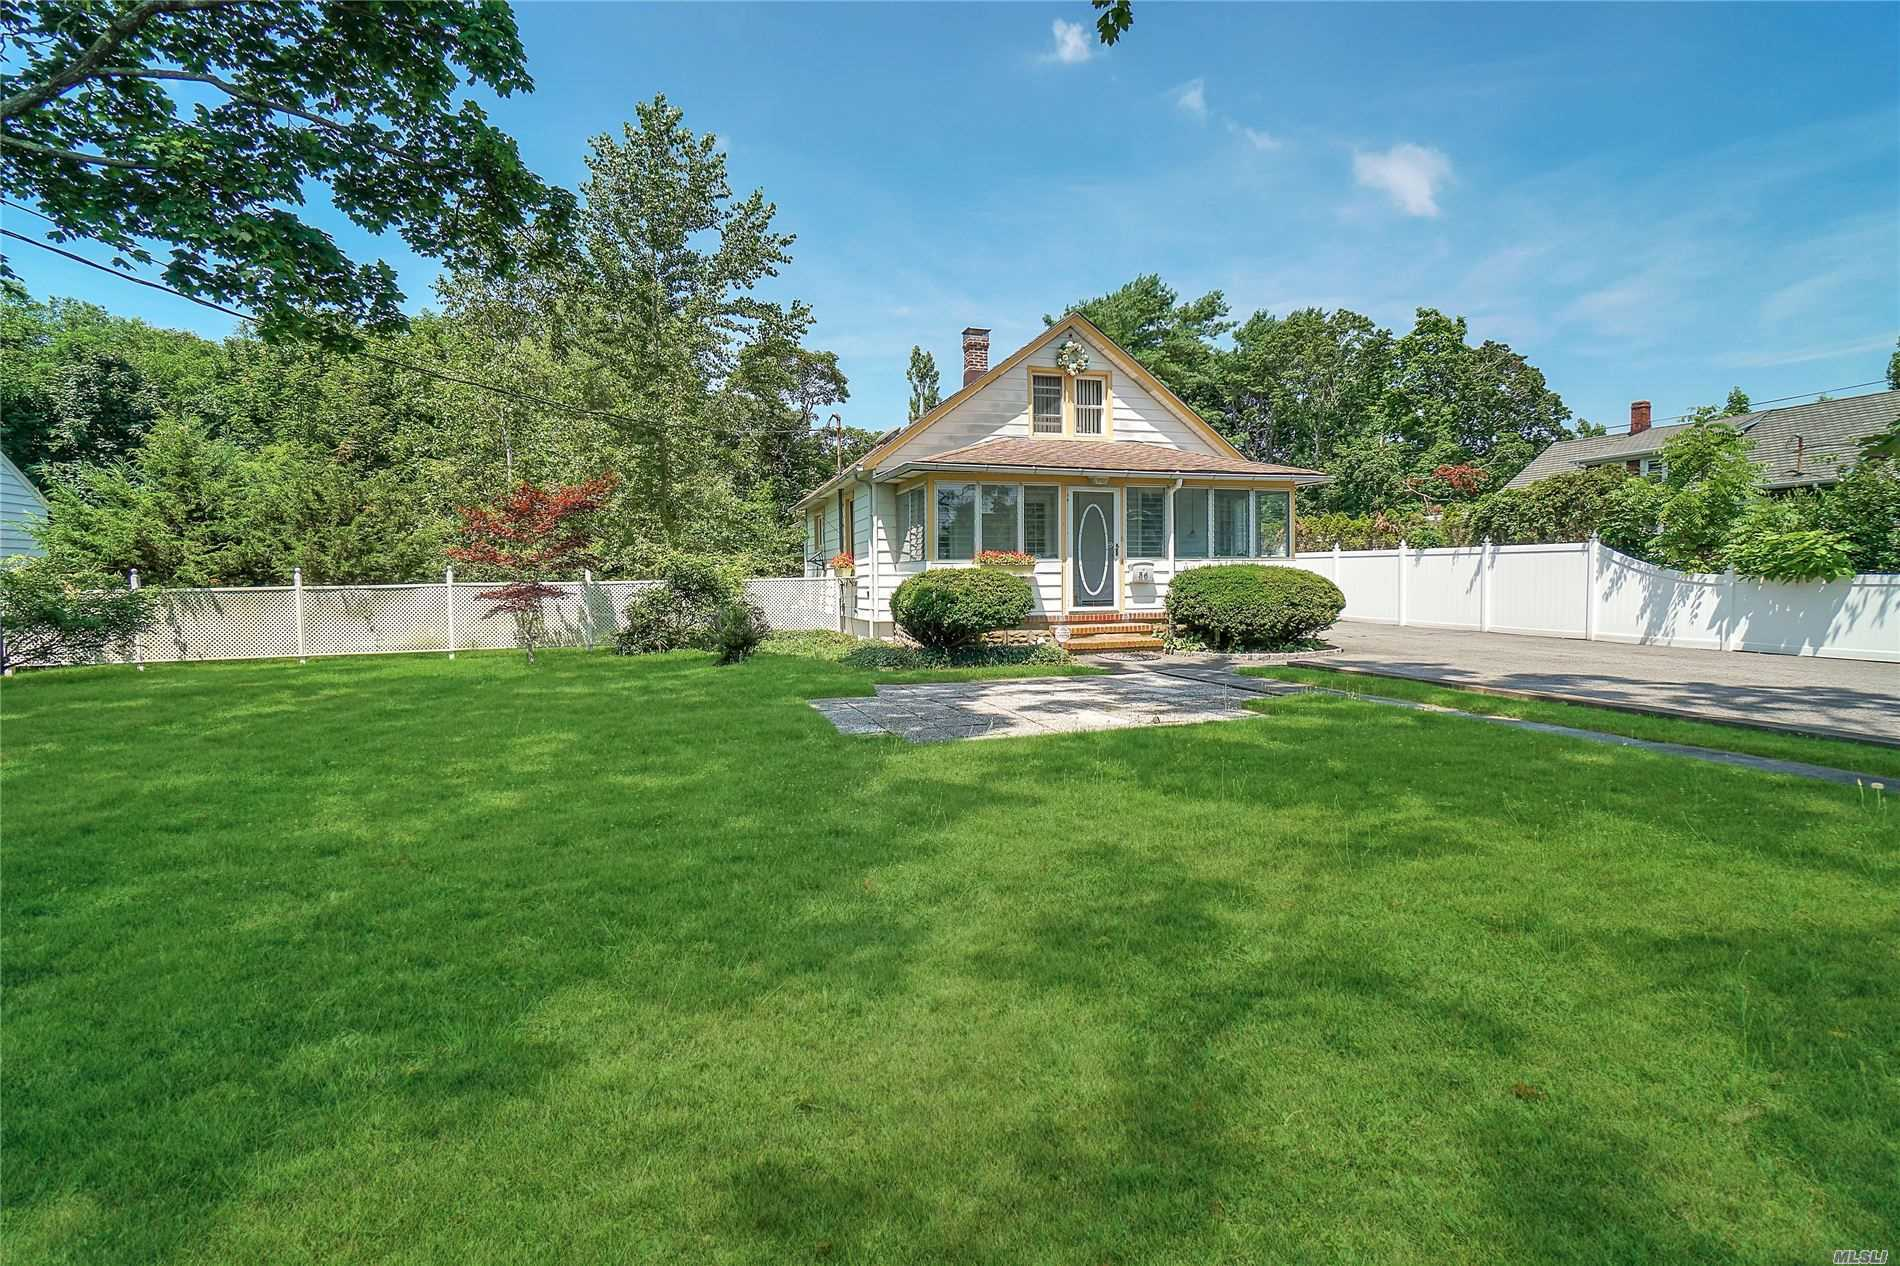 56 Orchard Rd - E. Patchogue, New York